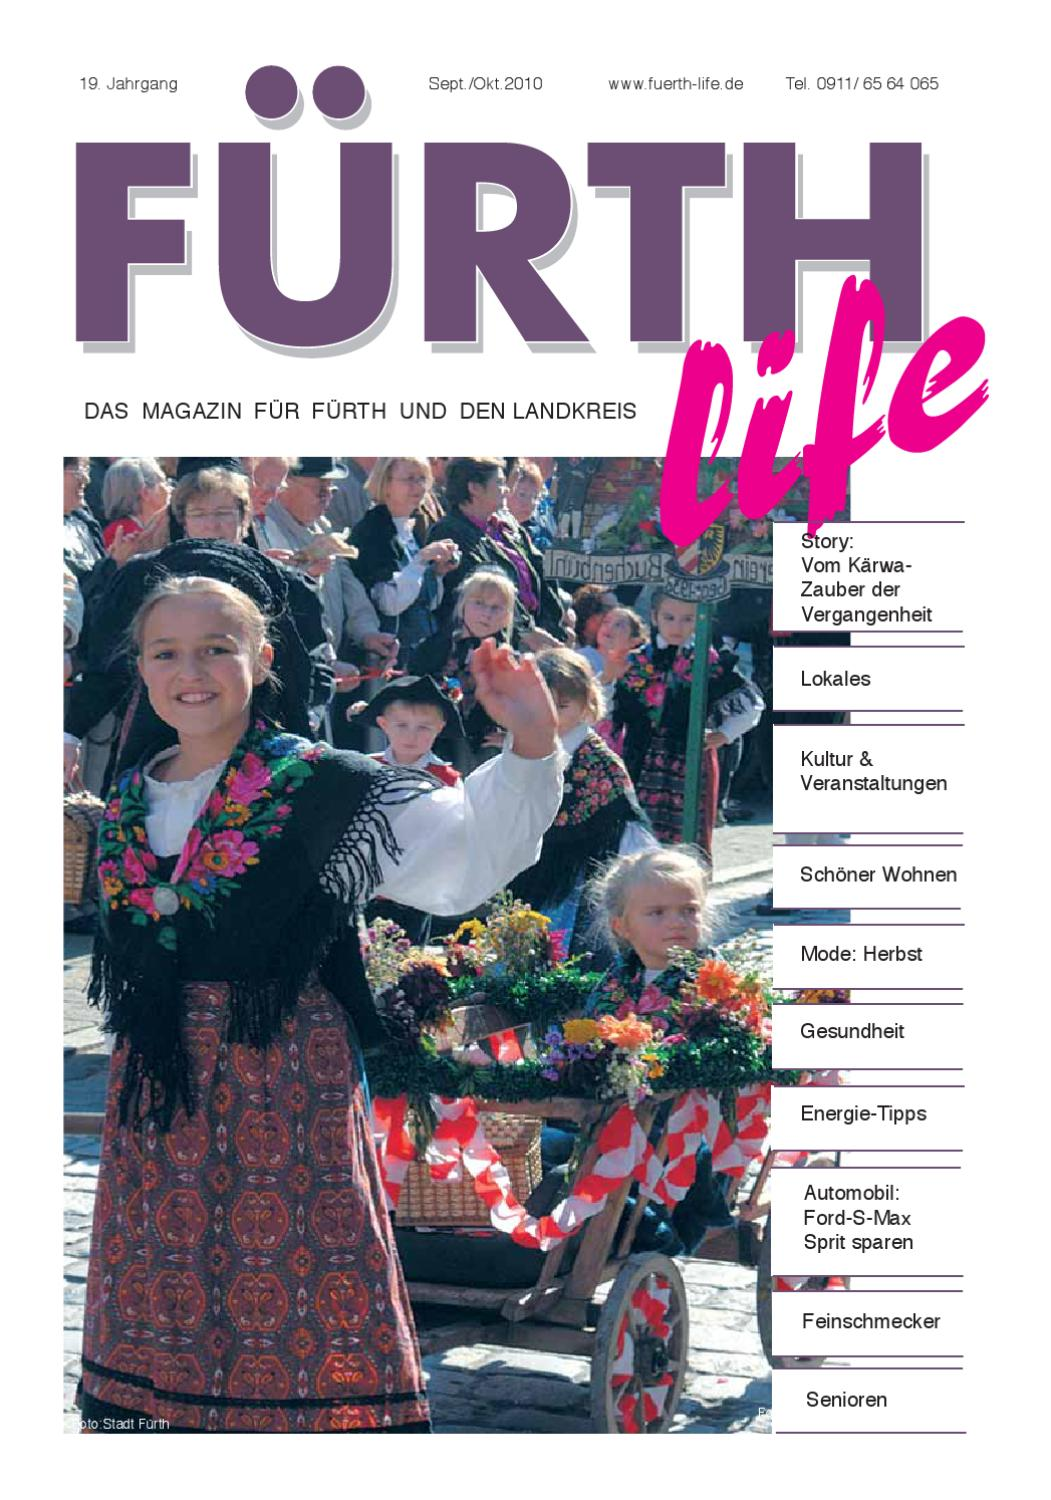 Fuerth Life Oct 10 By Stratistic Issuu